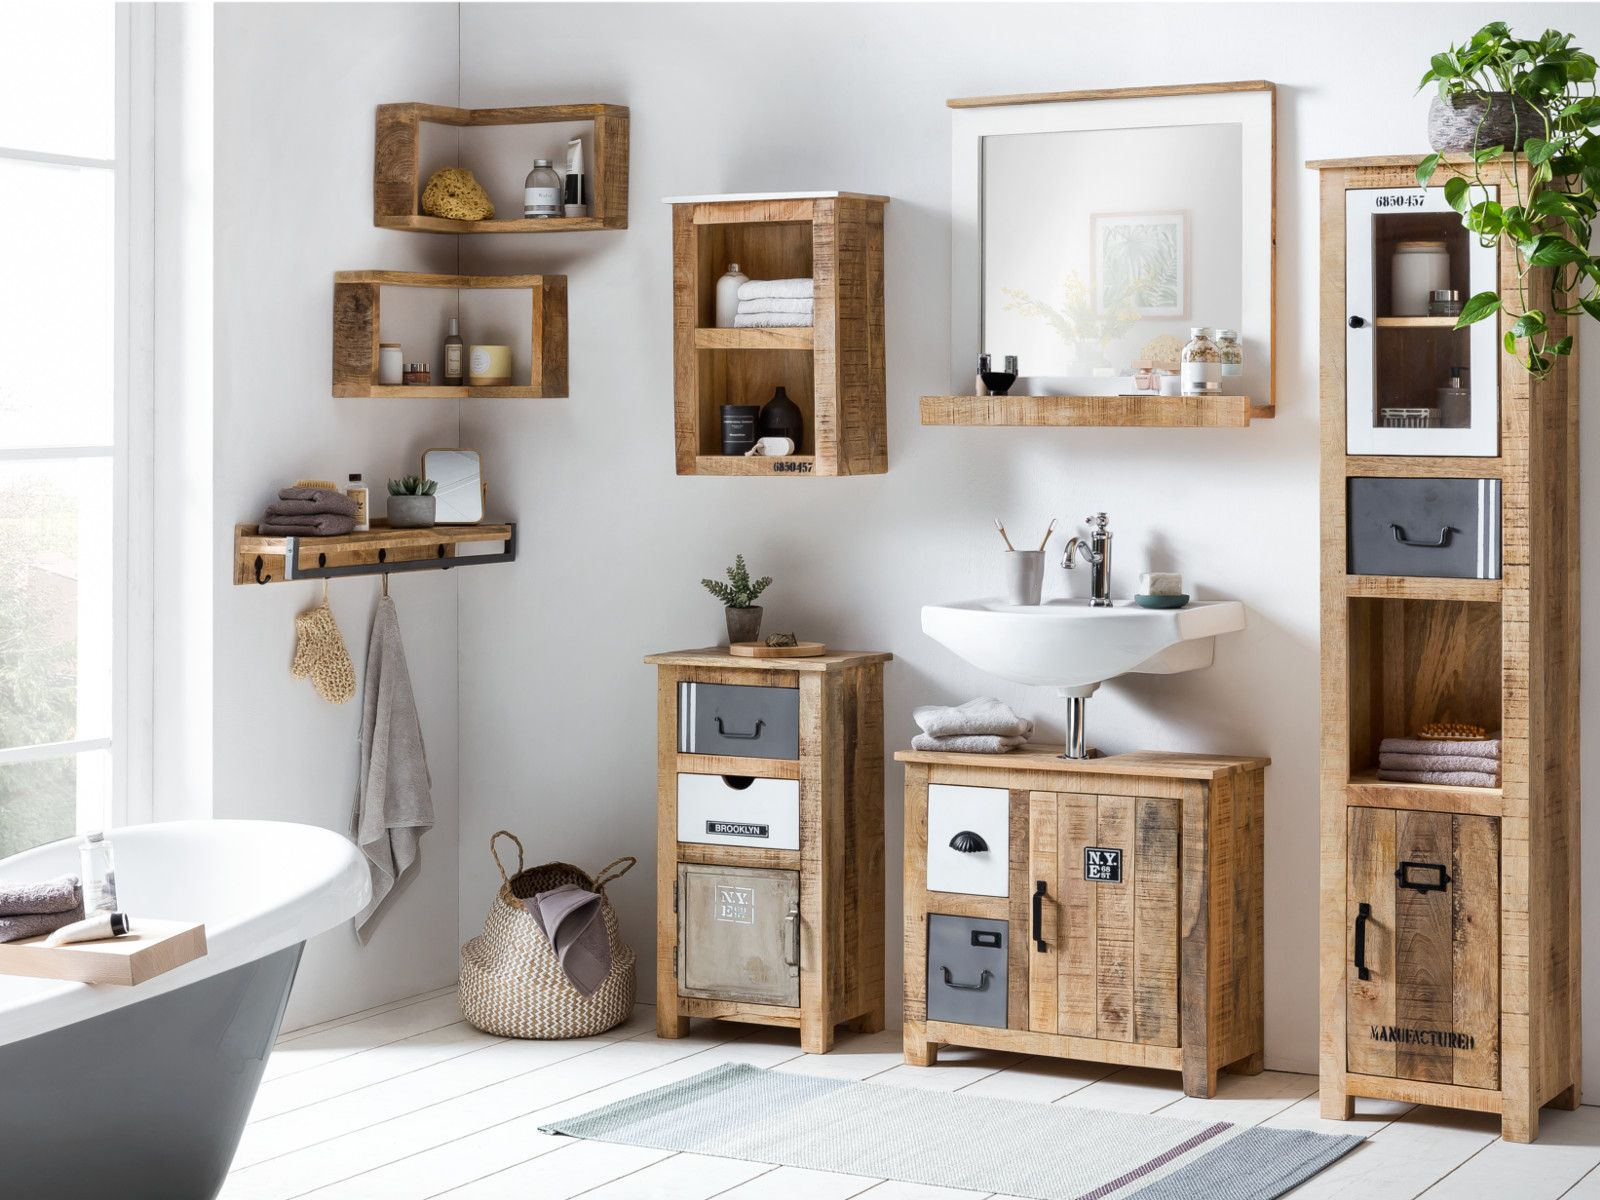 Badmöbel Set Landhausstil Badmöbel Set Pune I Woodkings Badezimmer Idee Inspiration Möbel